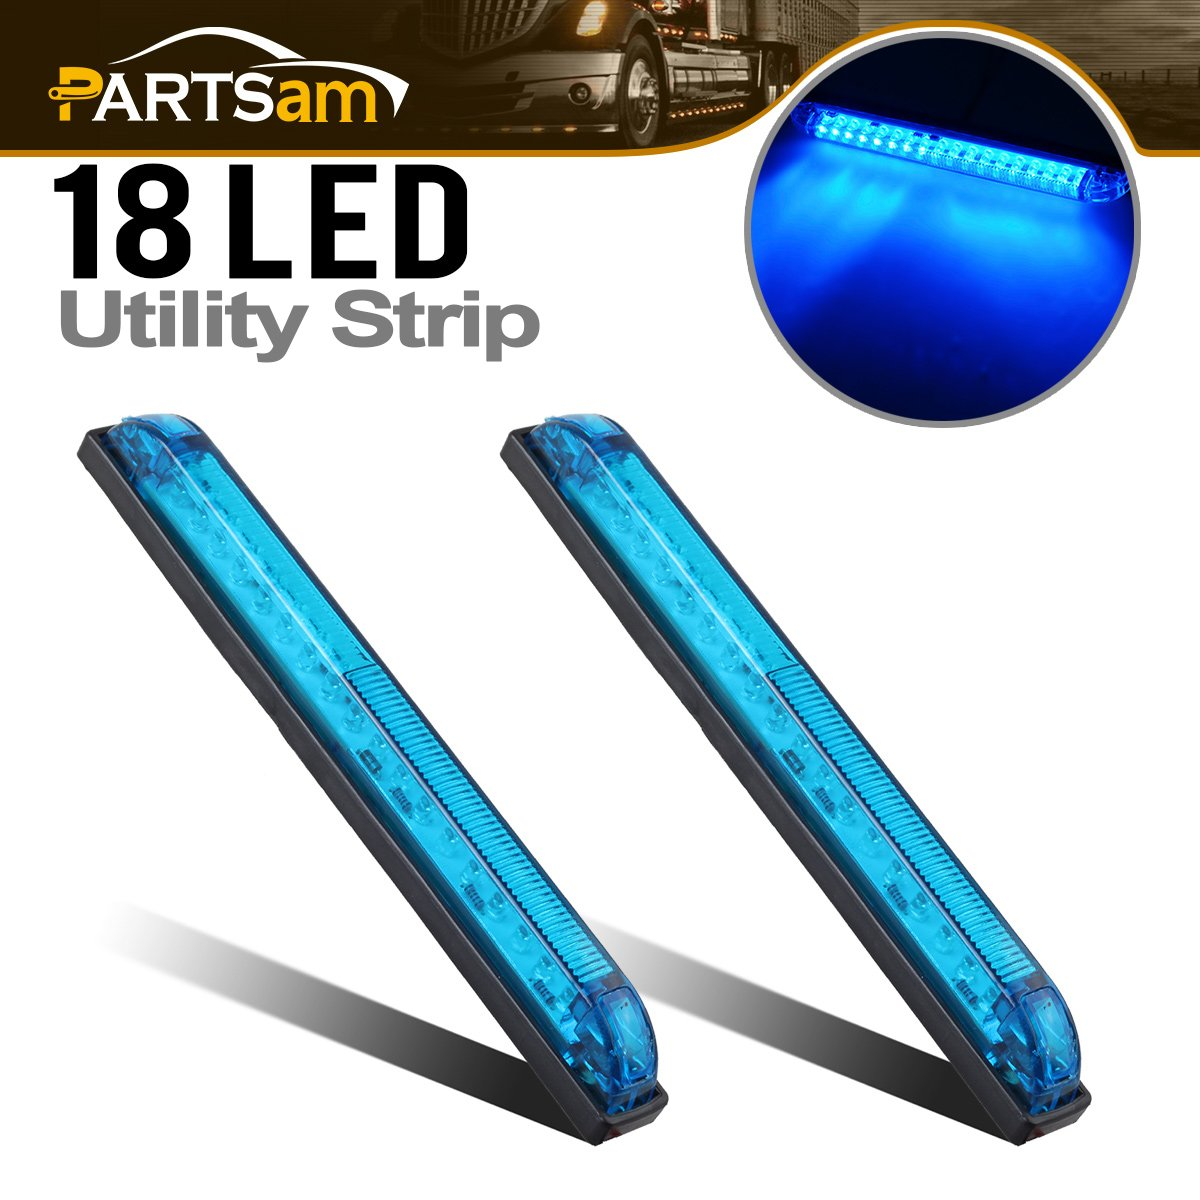 Partsam 2pcs Blue - 18LED 8' Utility Strip Light Bar Auto Marker Light 12V Low Current Draw